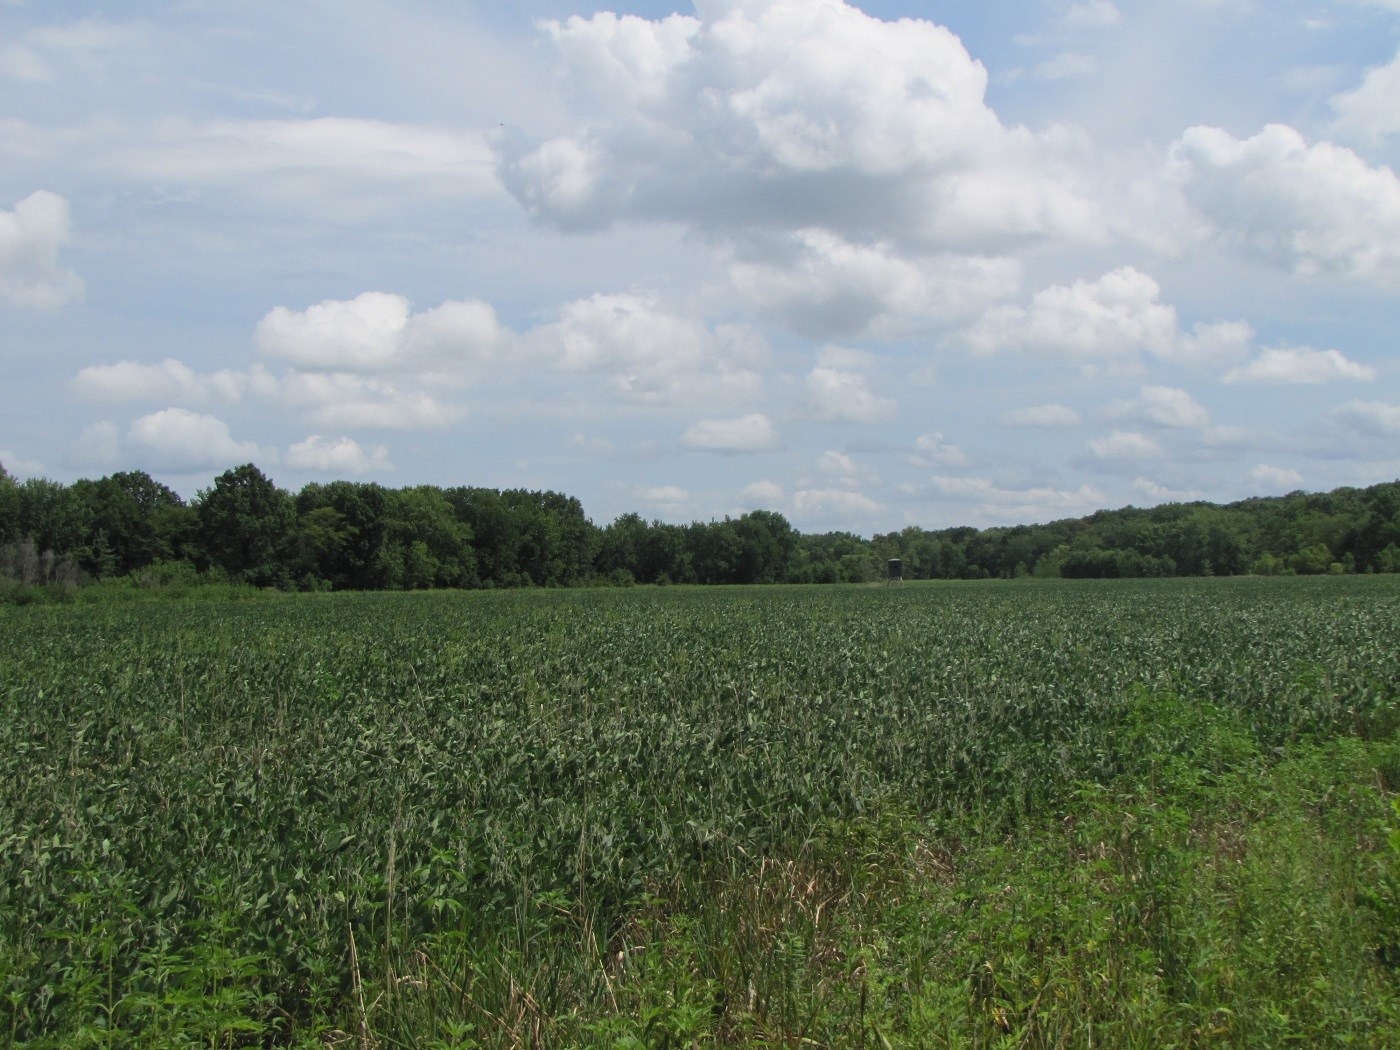 NORTHERN MO LAND FOR SALE, WHITETAIL DEER HUNTING MO